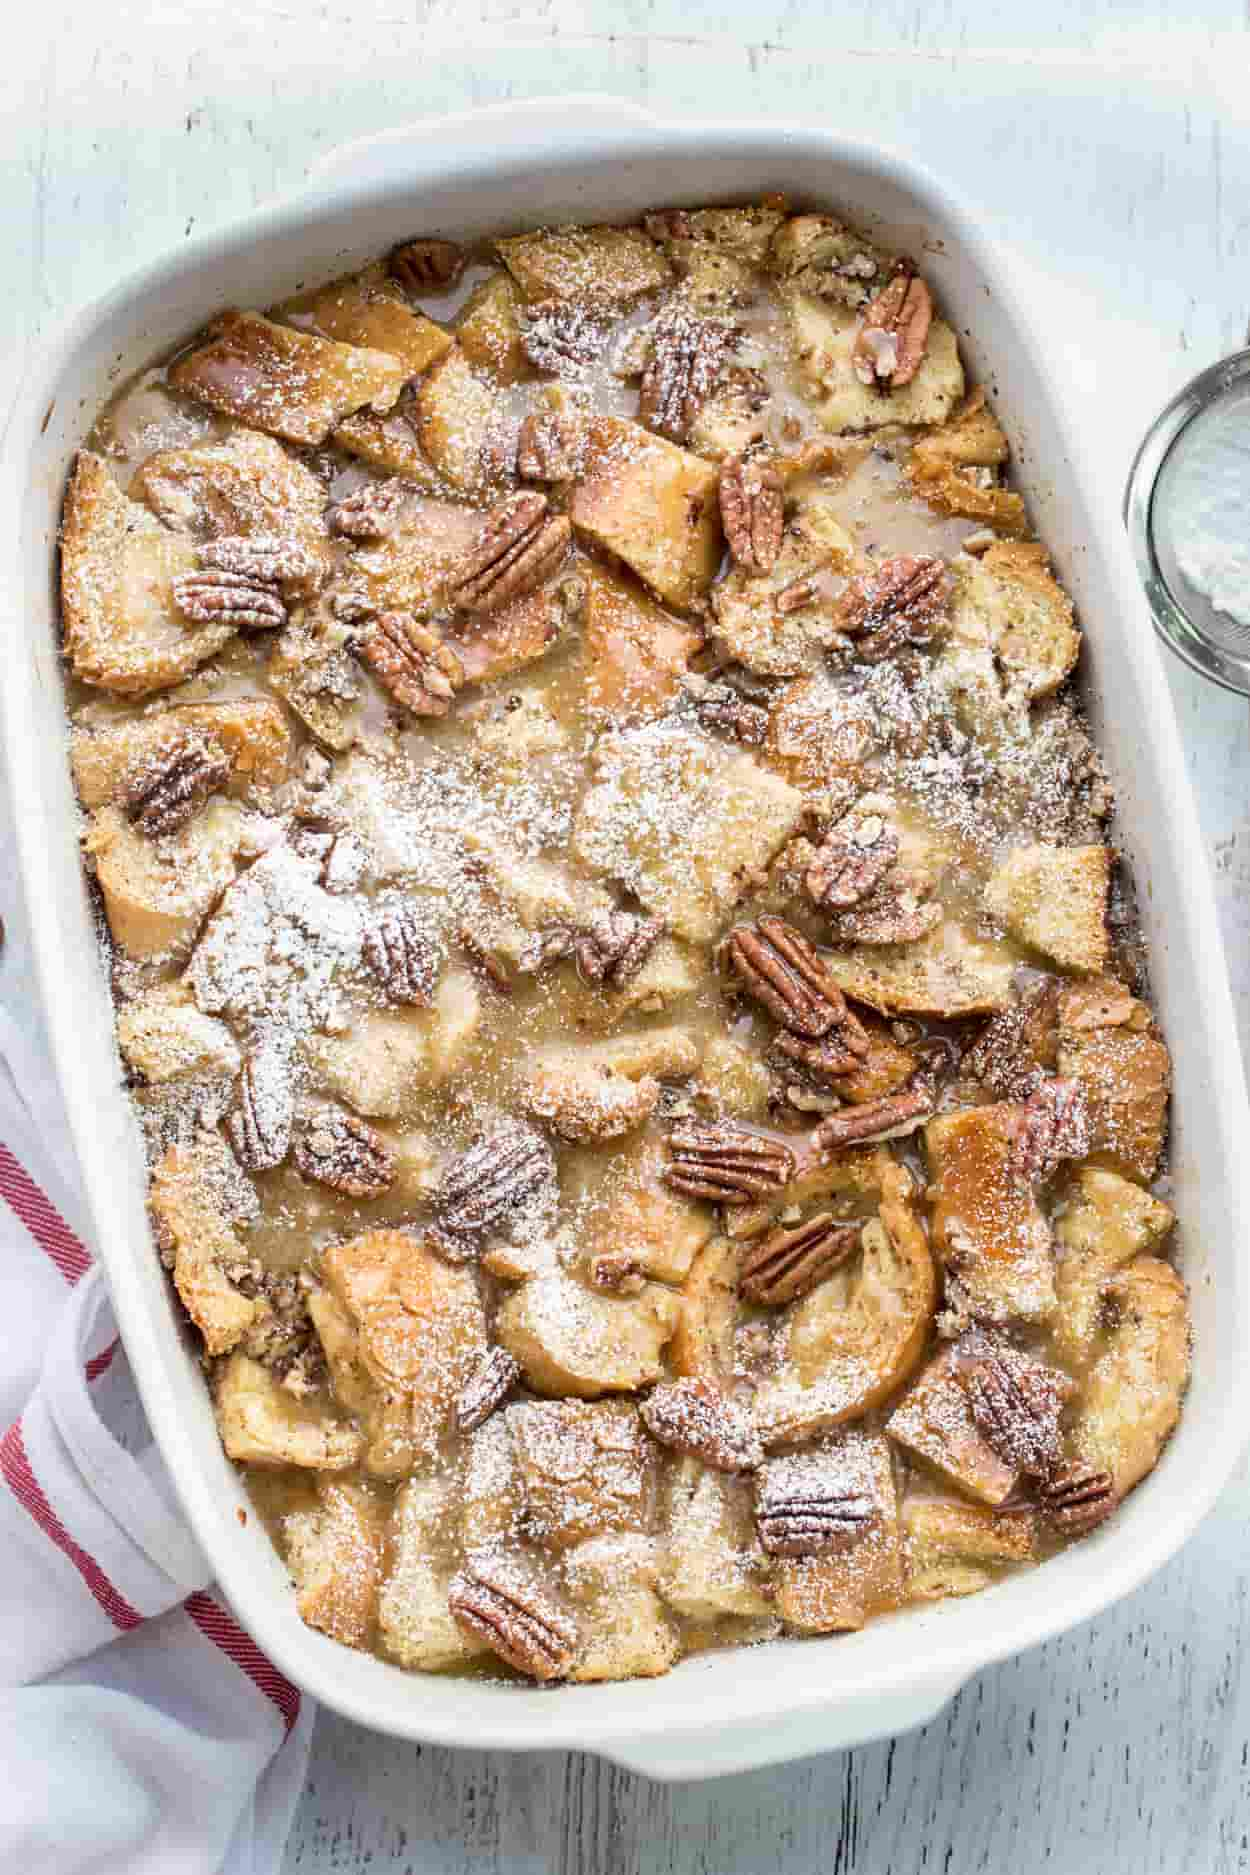 Maple pecan french toast casserole recipe with pecans and topped with powdered sugar.